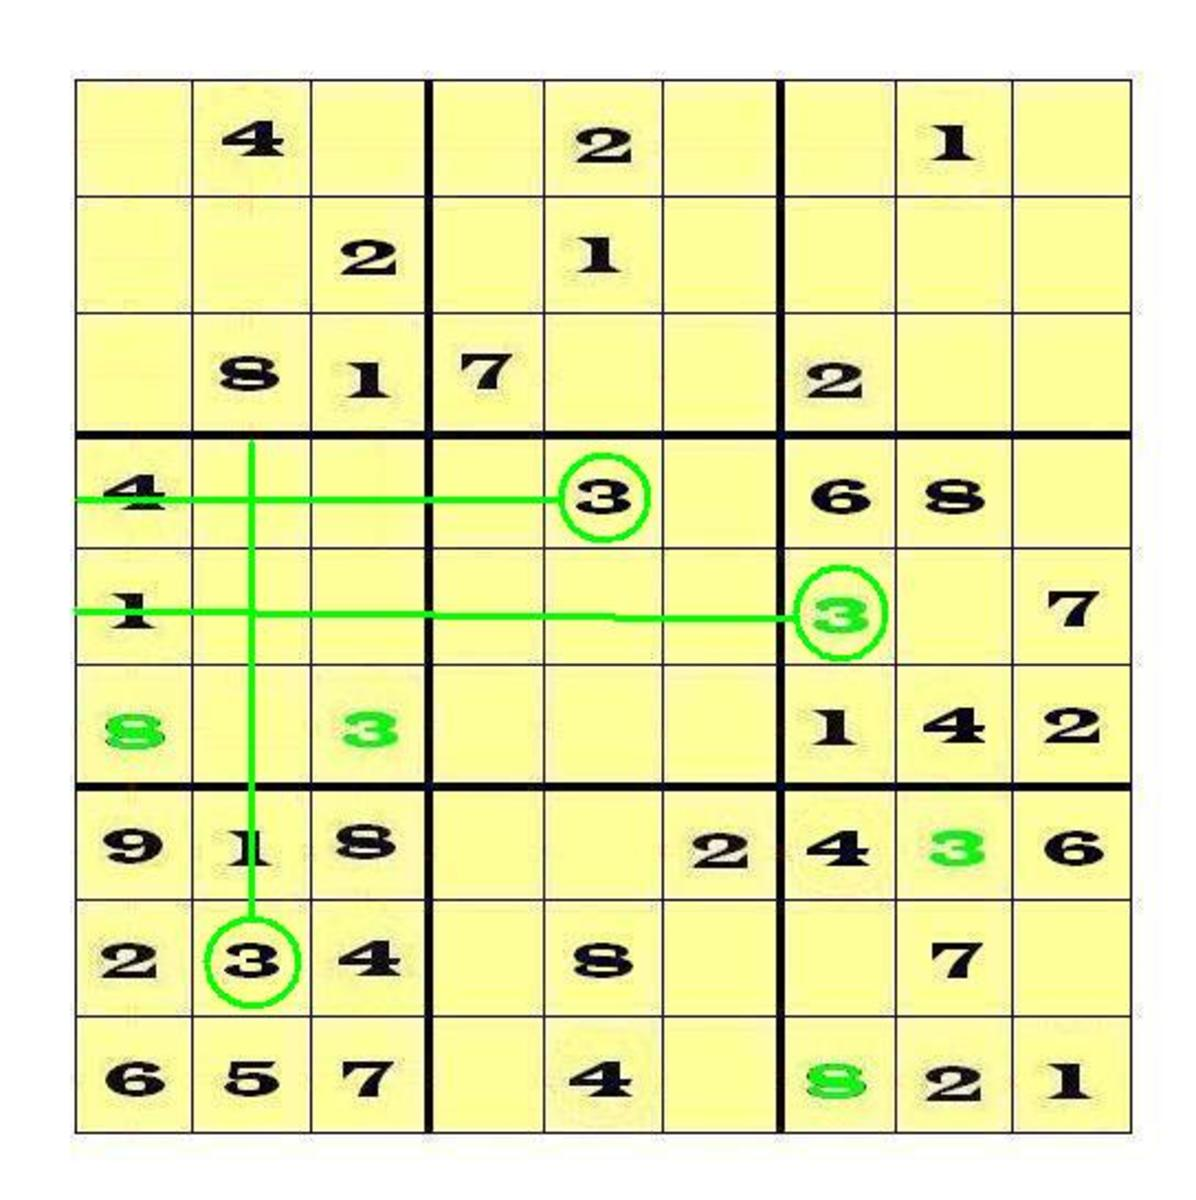 Slice 'n' Dice (Cross Hatching) to place the 3 digit in Block 4.  Afterwards, pay attention to Row 7.